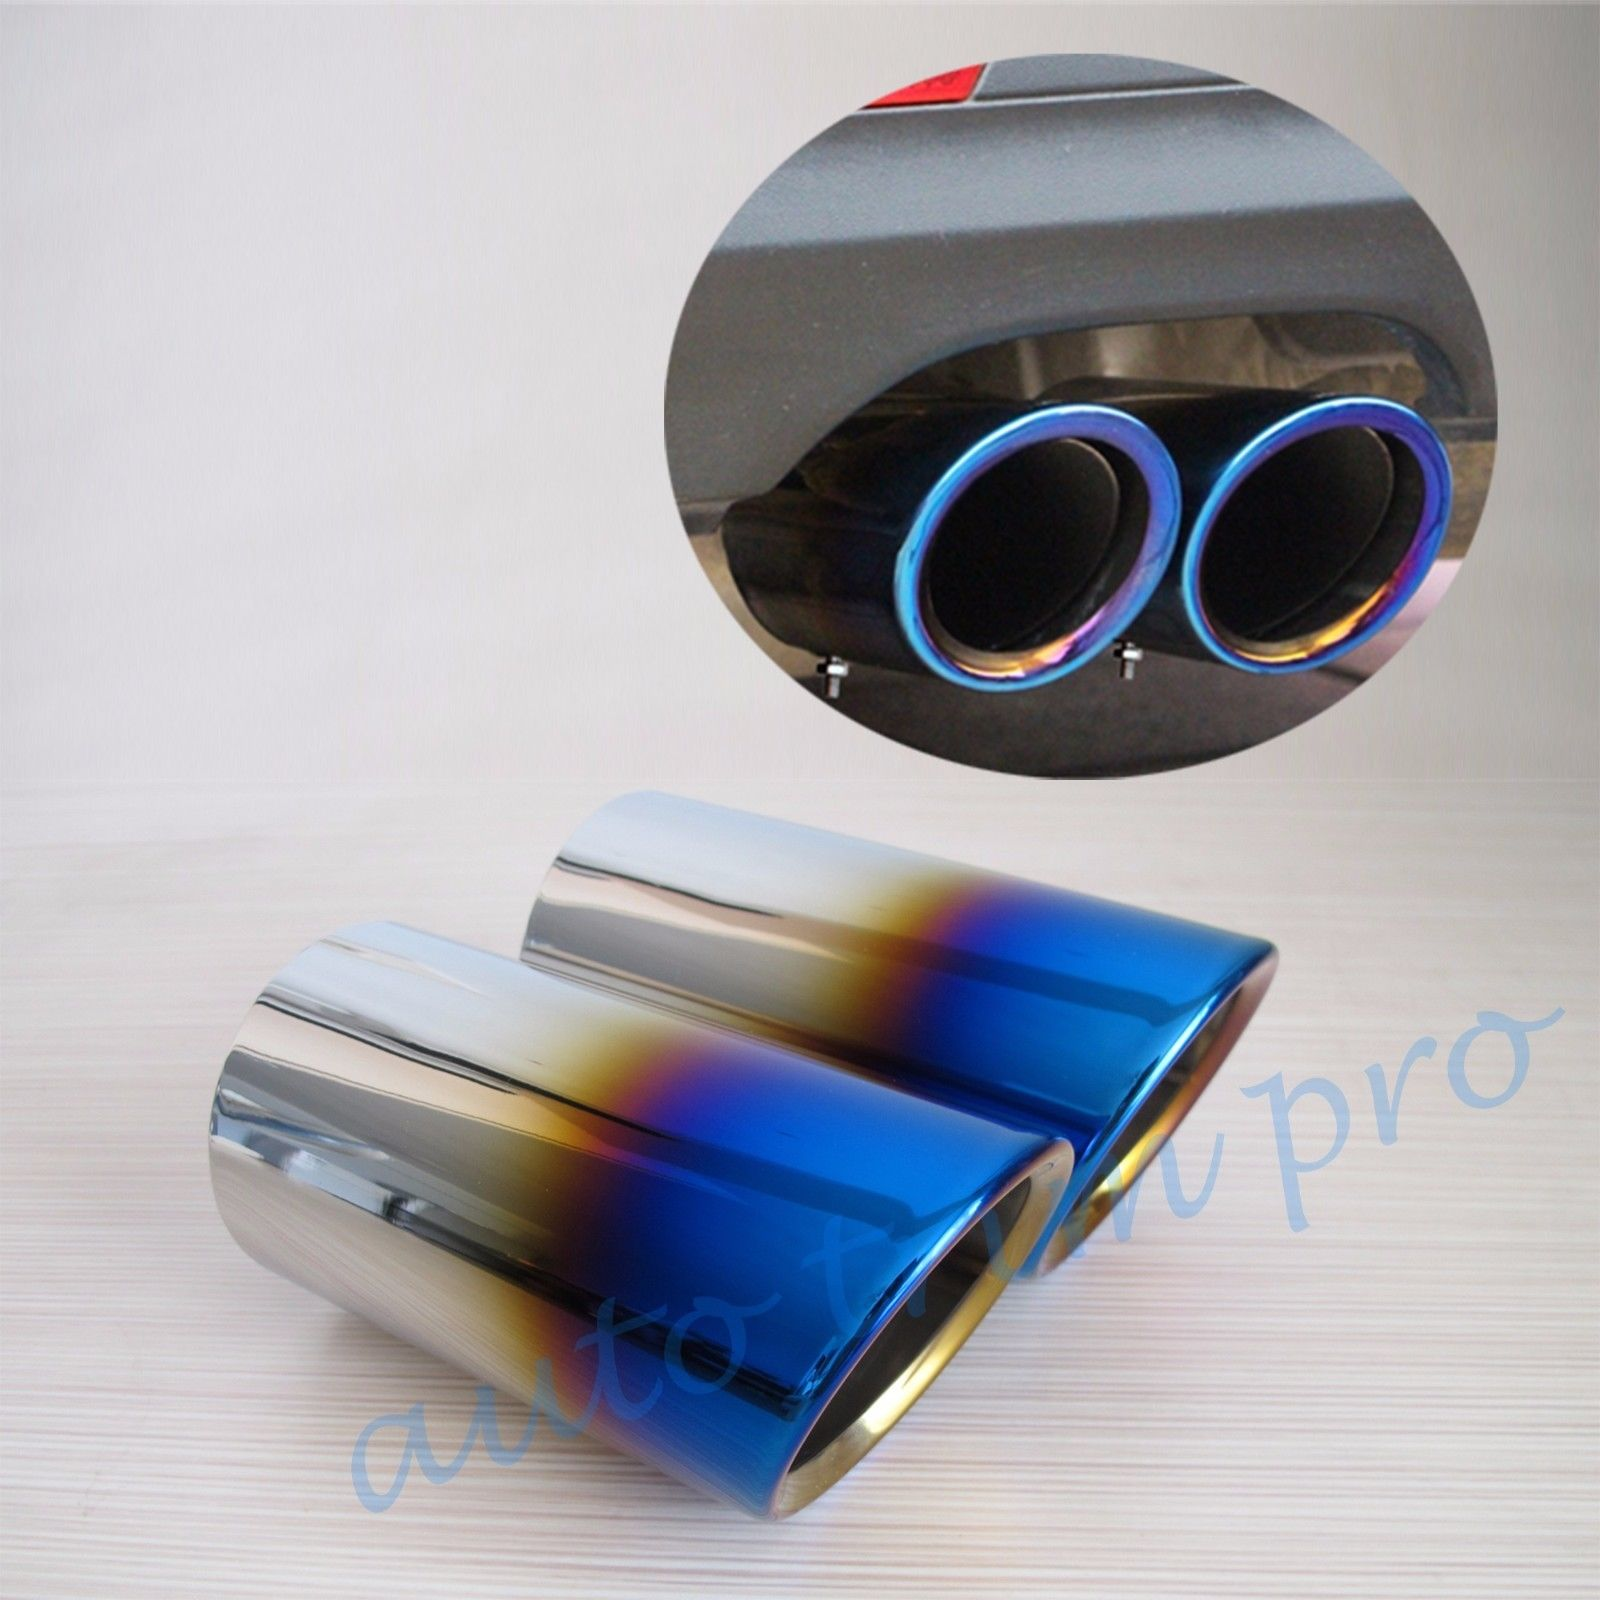 2pcs Rear Muffler Tail Pipe Exhaust Silencer Fit For BMW E90 E92 E93 325 328 2006-2010 Accessories